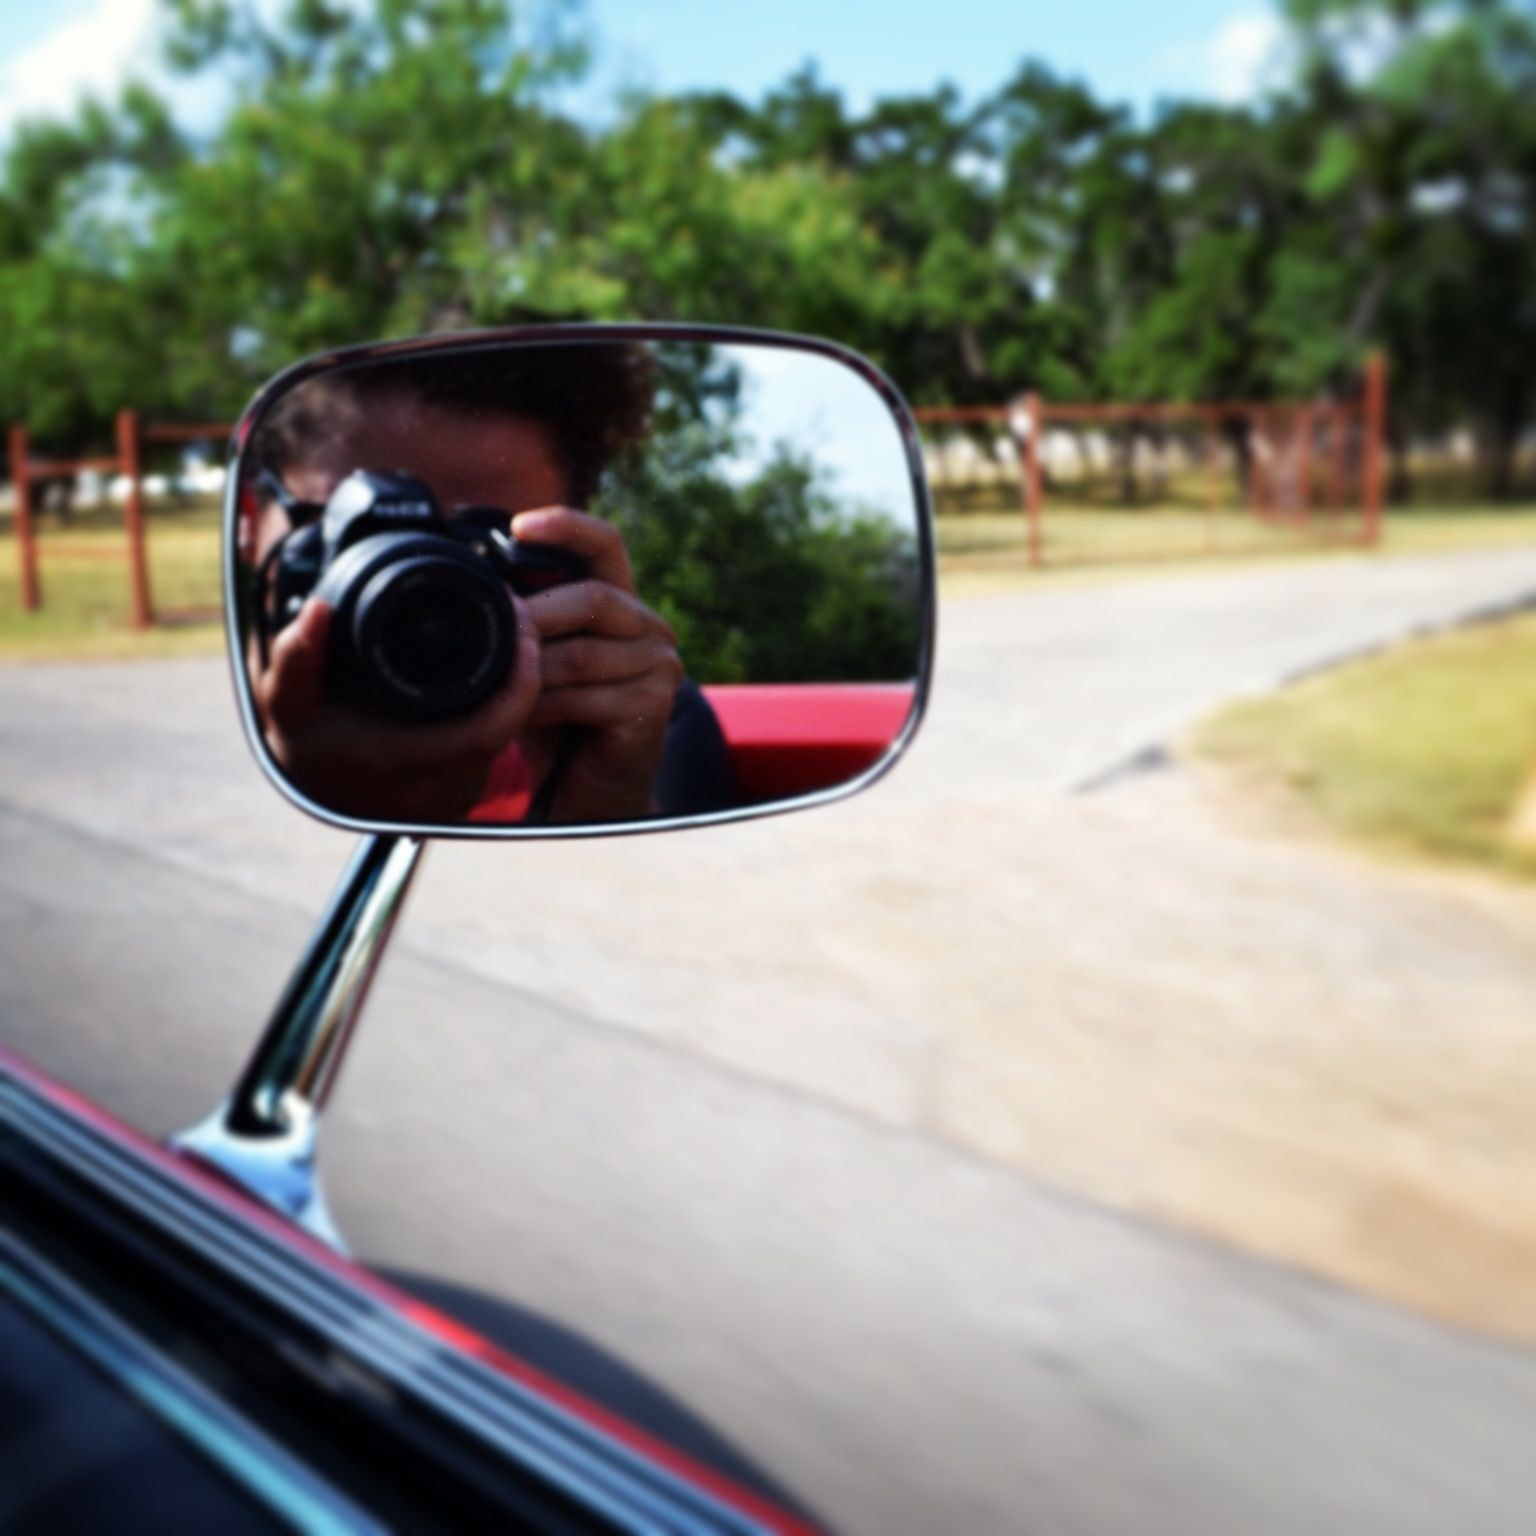 Making a photo in the mirror from your car!